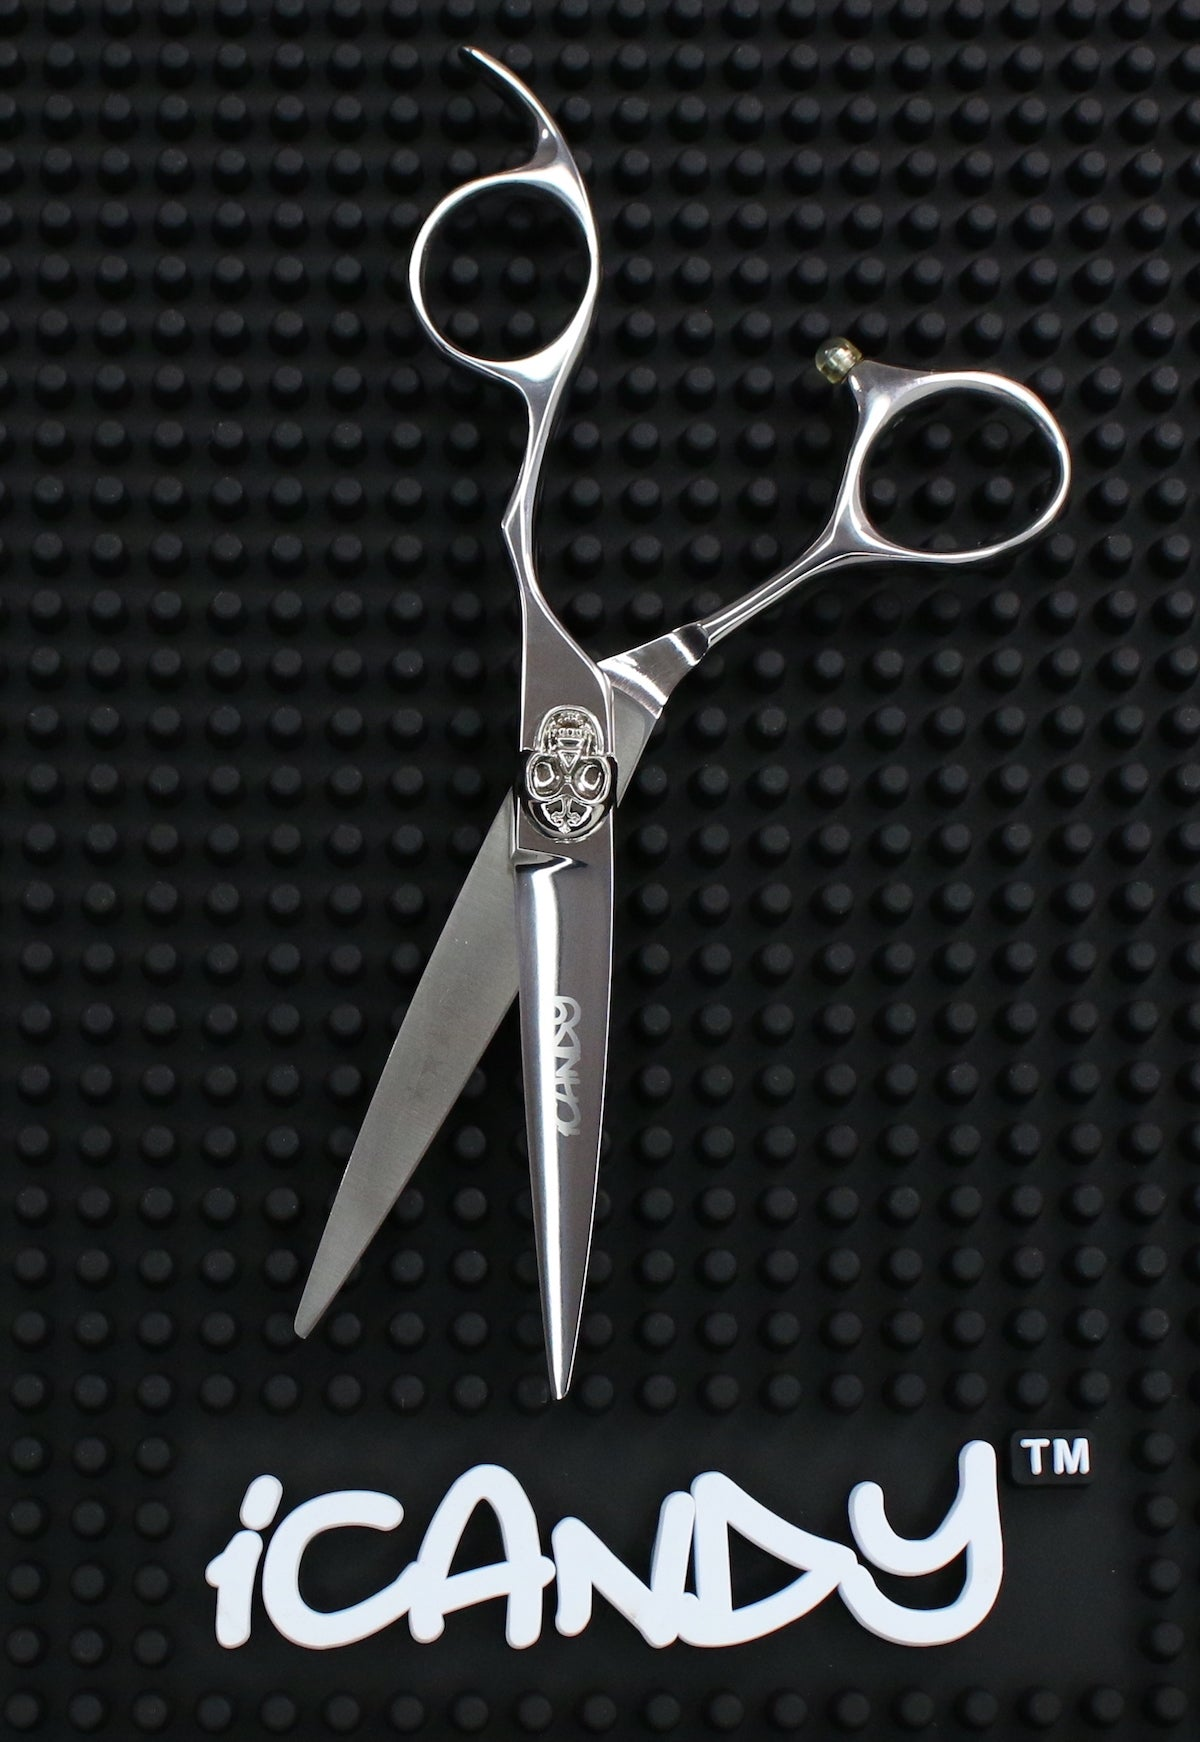 iCandy SKULL Scissors - Limited Edition ! (5.5 inch) - iCandy Scissors